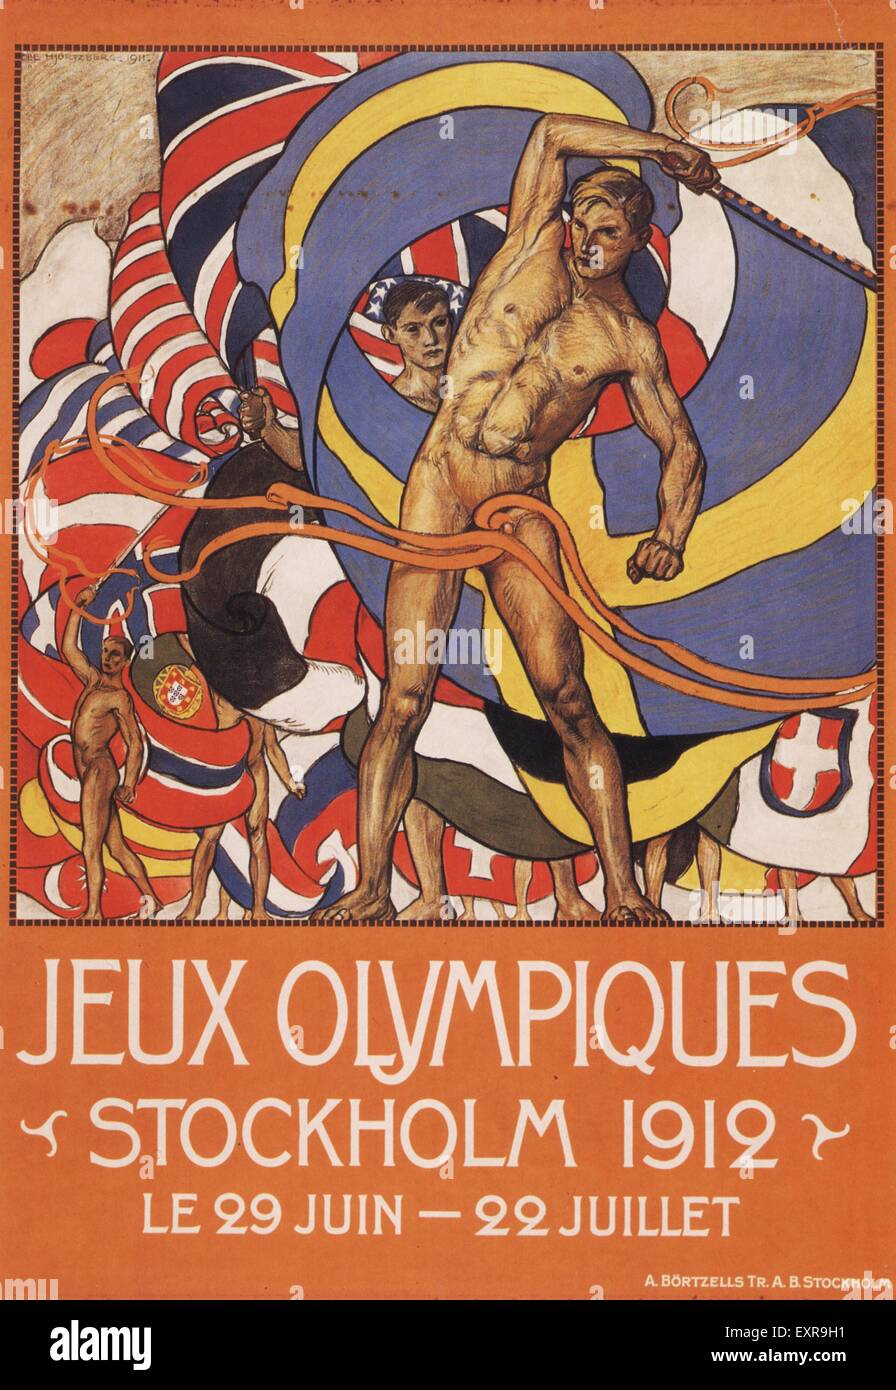 1910s Sweden Olympic Games Poster - Stock Image